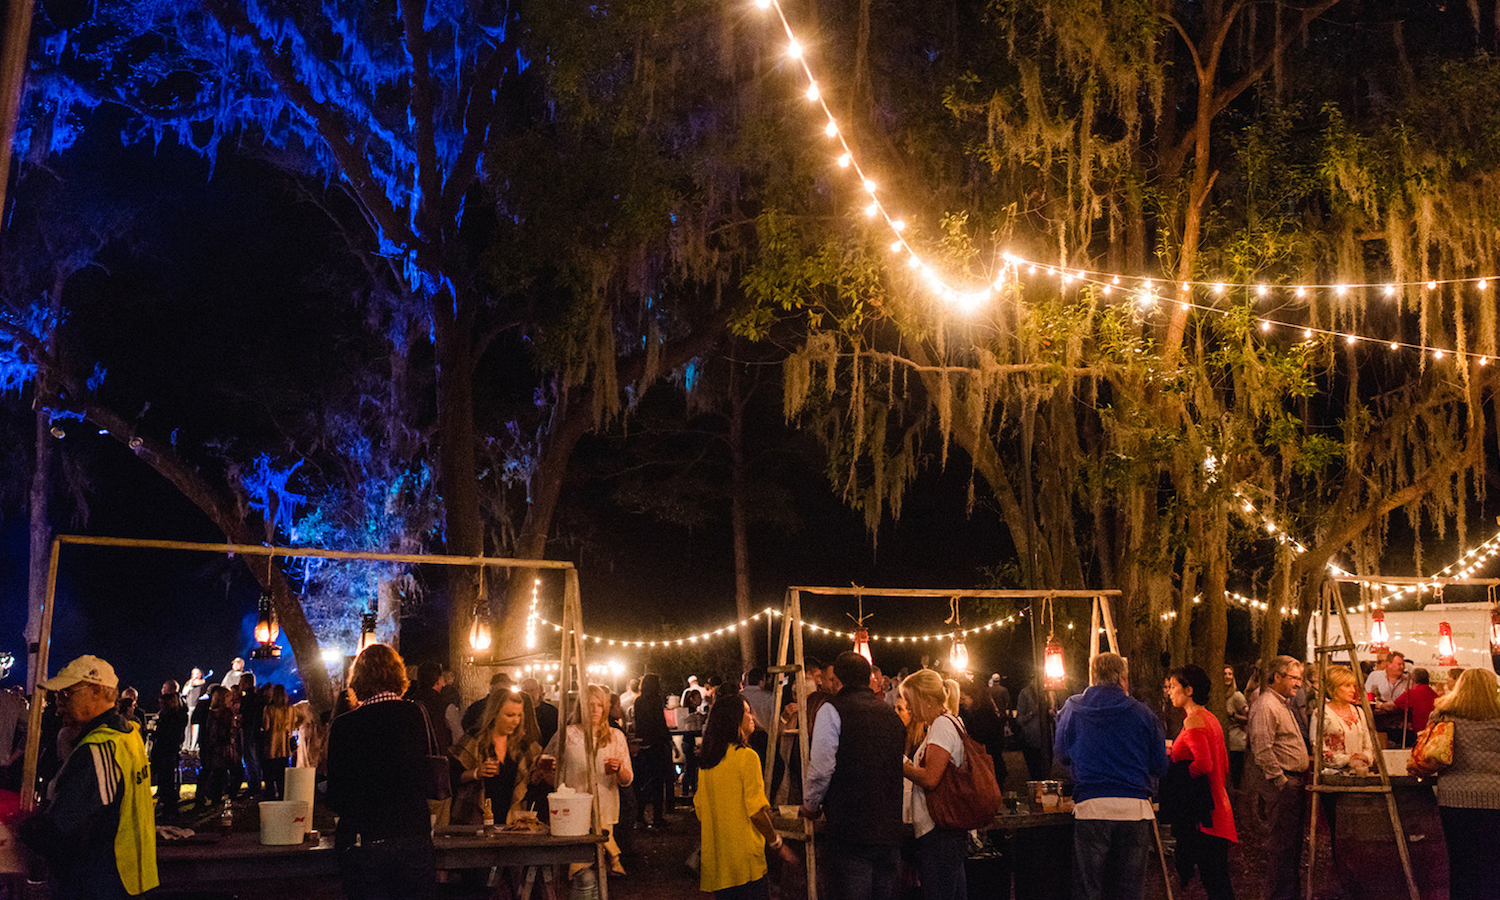 Nightlife at the Hilton Head Island Seafood Festival